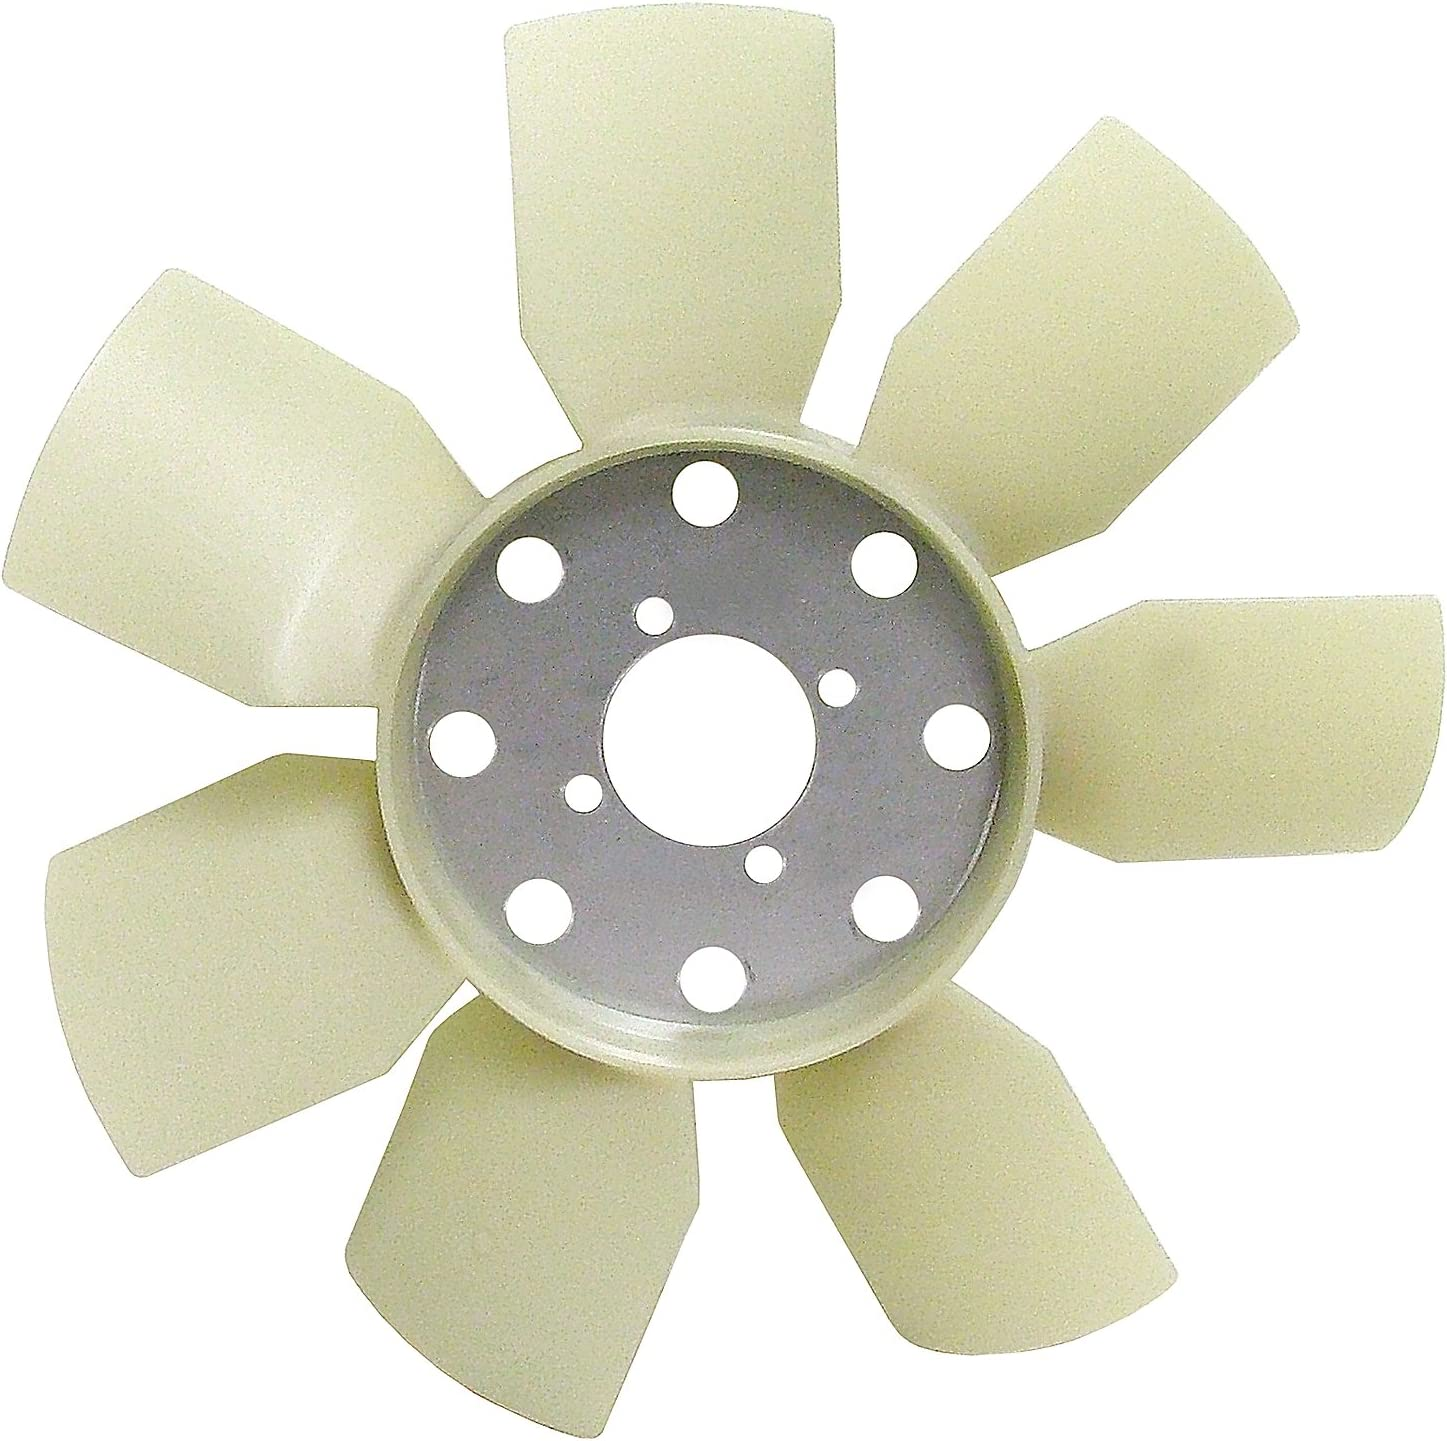 GM Genuine Parts 15-80695 Fan It is very popular unisex Engine Blade Cooling